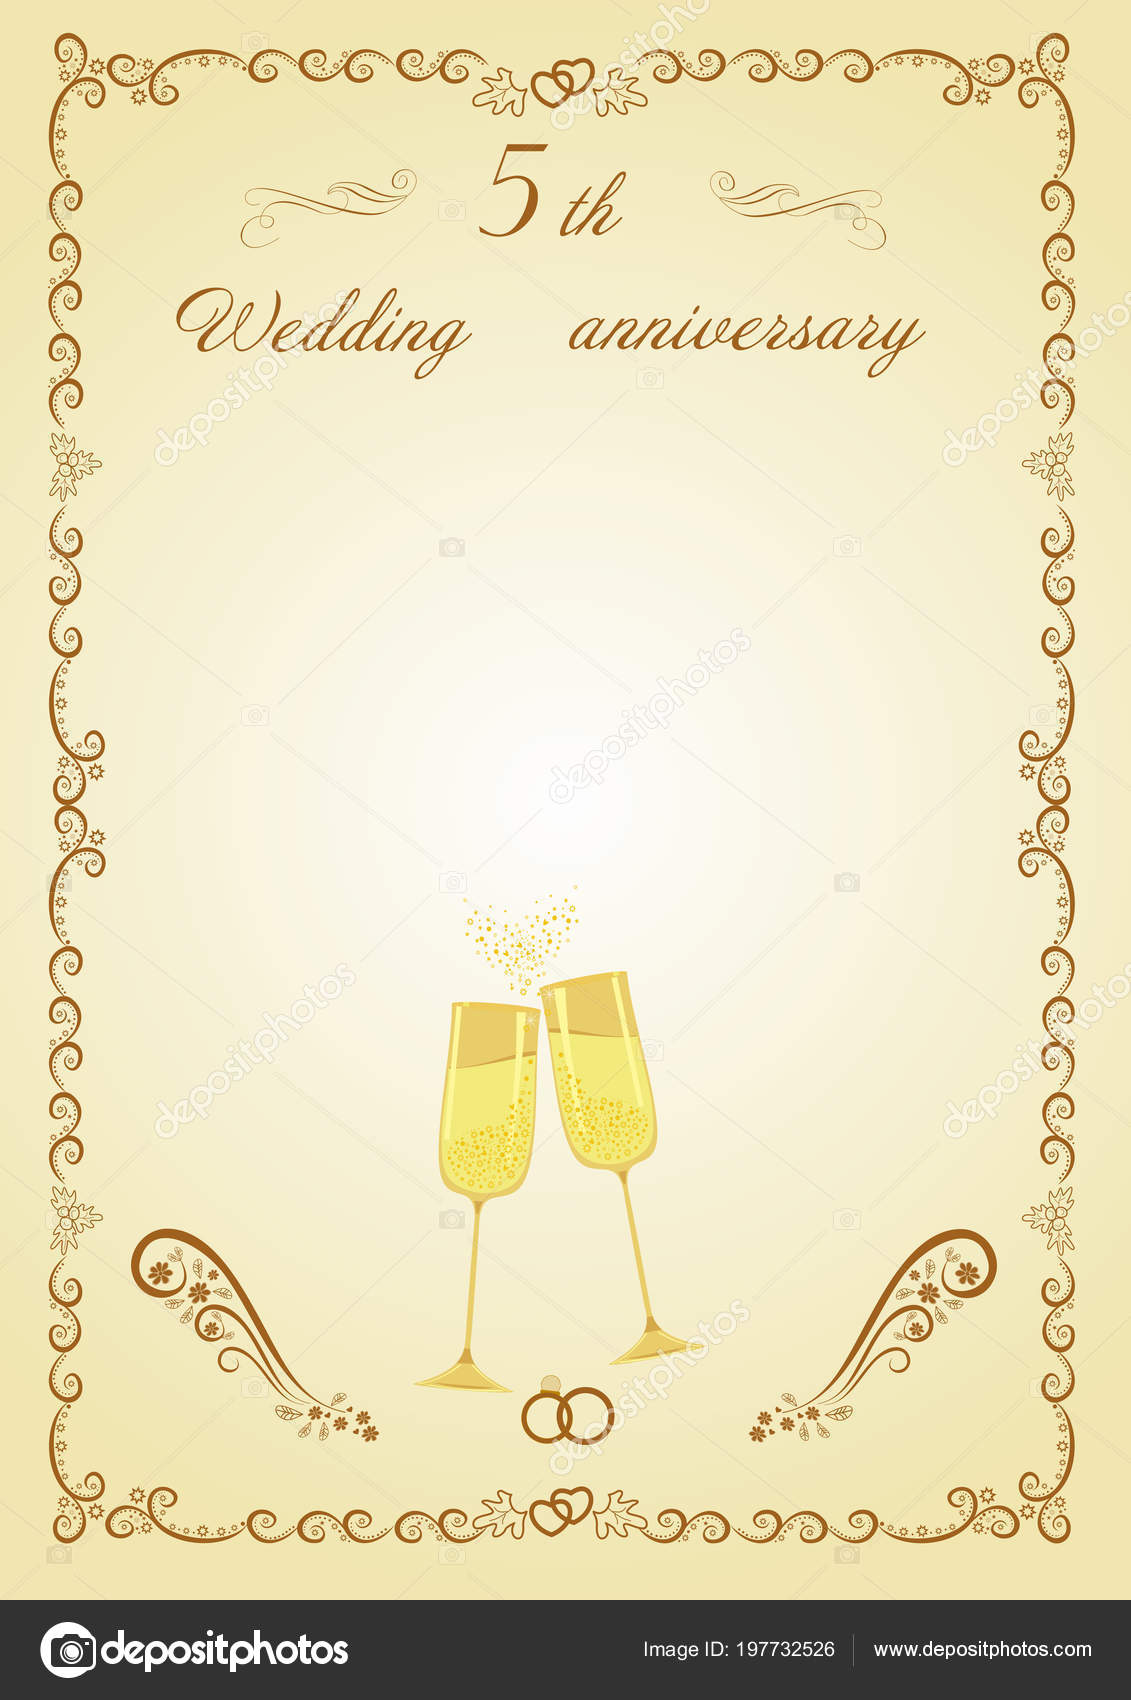 Anniversary Clip Art Downloads Anniversary Celebrate